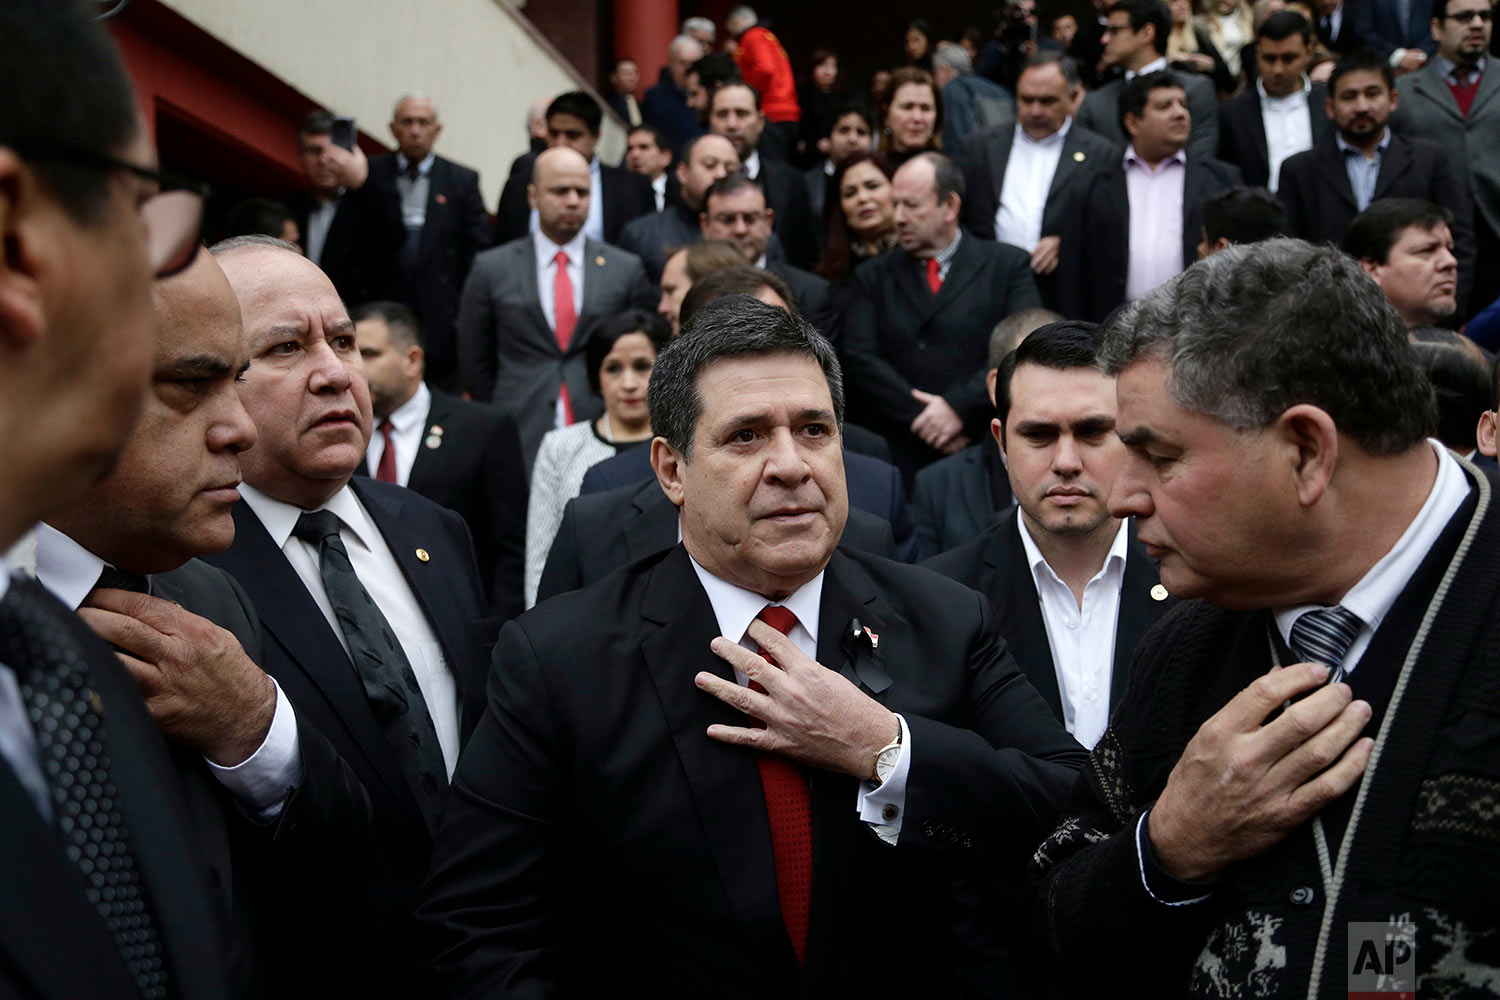 Paraguay's President Horacio Cartes straightens his tie as he waits for the arrival of the coffin of his Agriculture Minister Luis Gneiting, for a memorial service at the Colorado Party headquarters in Asuncion, Paraguay, July 27, 2018. The minister and three other people died when the twin-engine plane they were traveling in went down in a marshy area shortly after taking off at night from an airport. (AP Photo/Jorge Saenz)